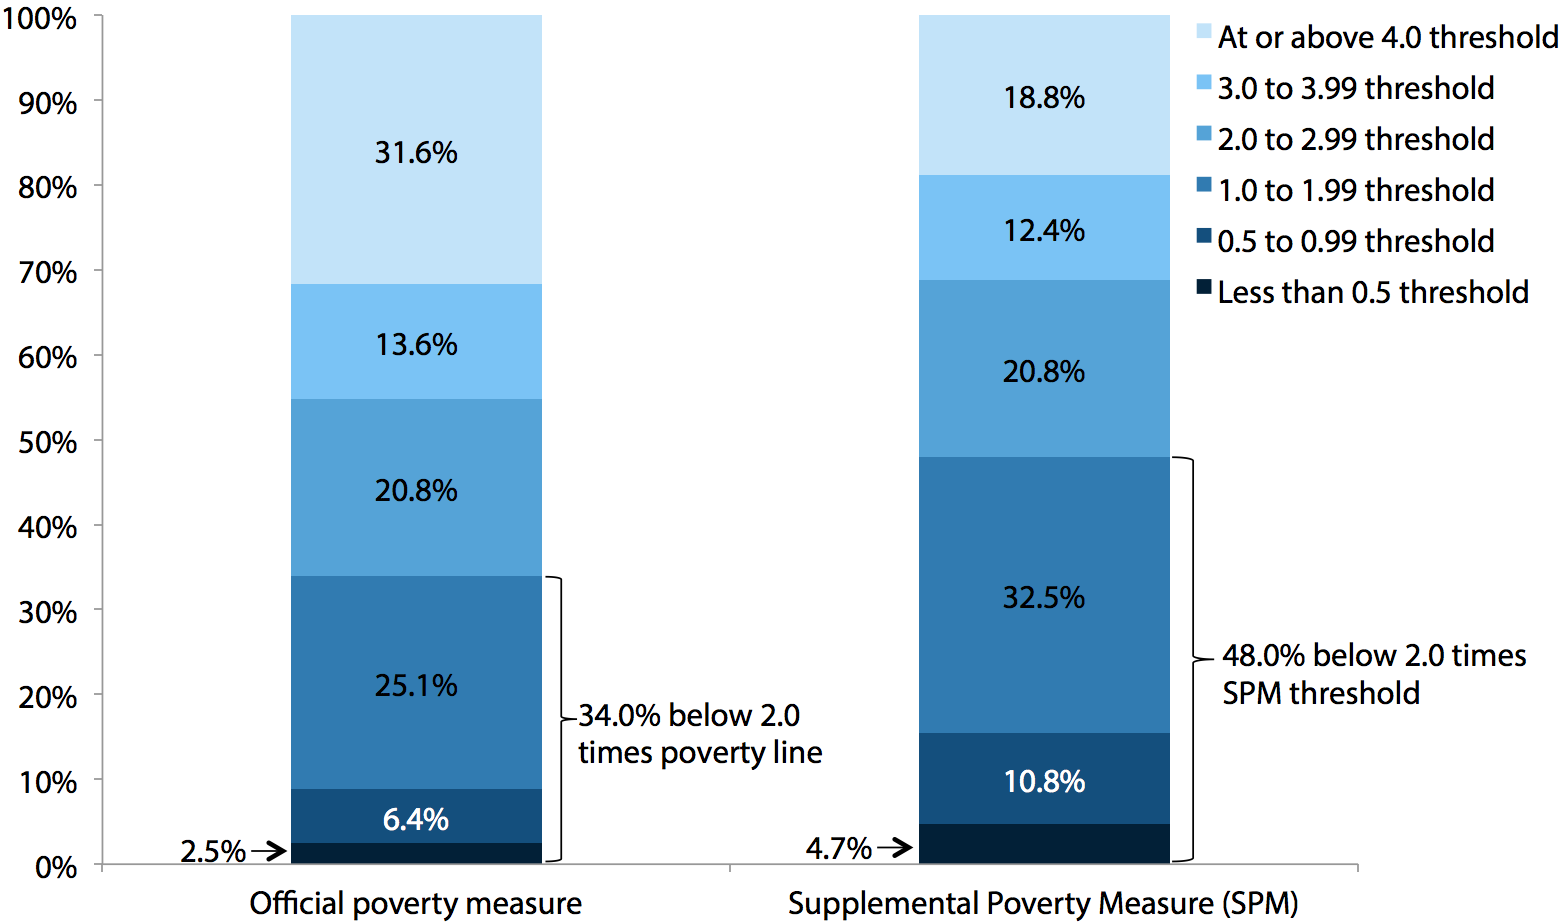 Share of the elderly at various income-to-poverty-threshold ratios, official vs. supplemental (SPM), 2009–2011 average